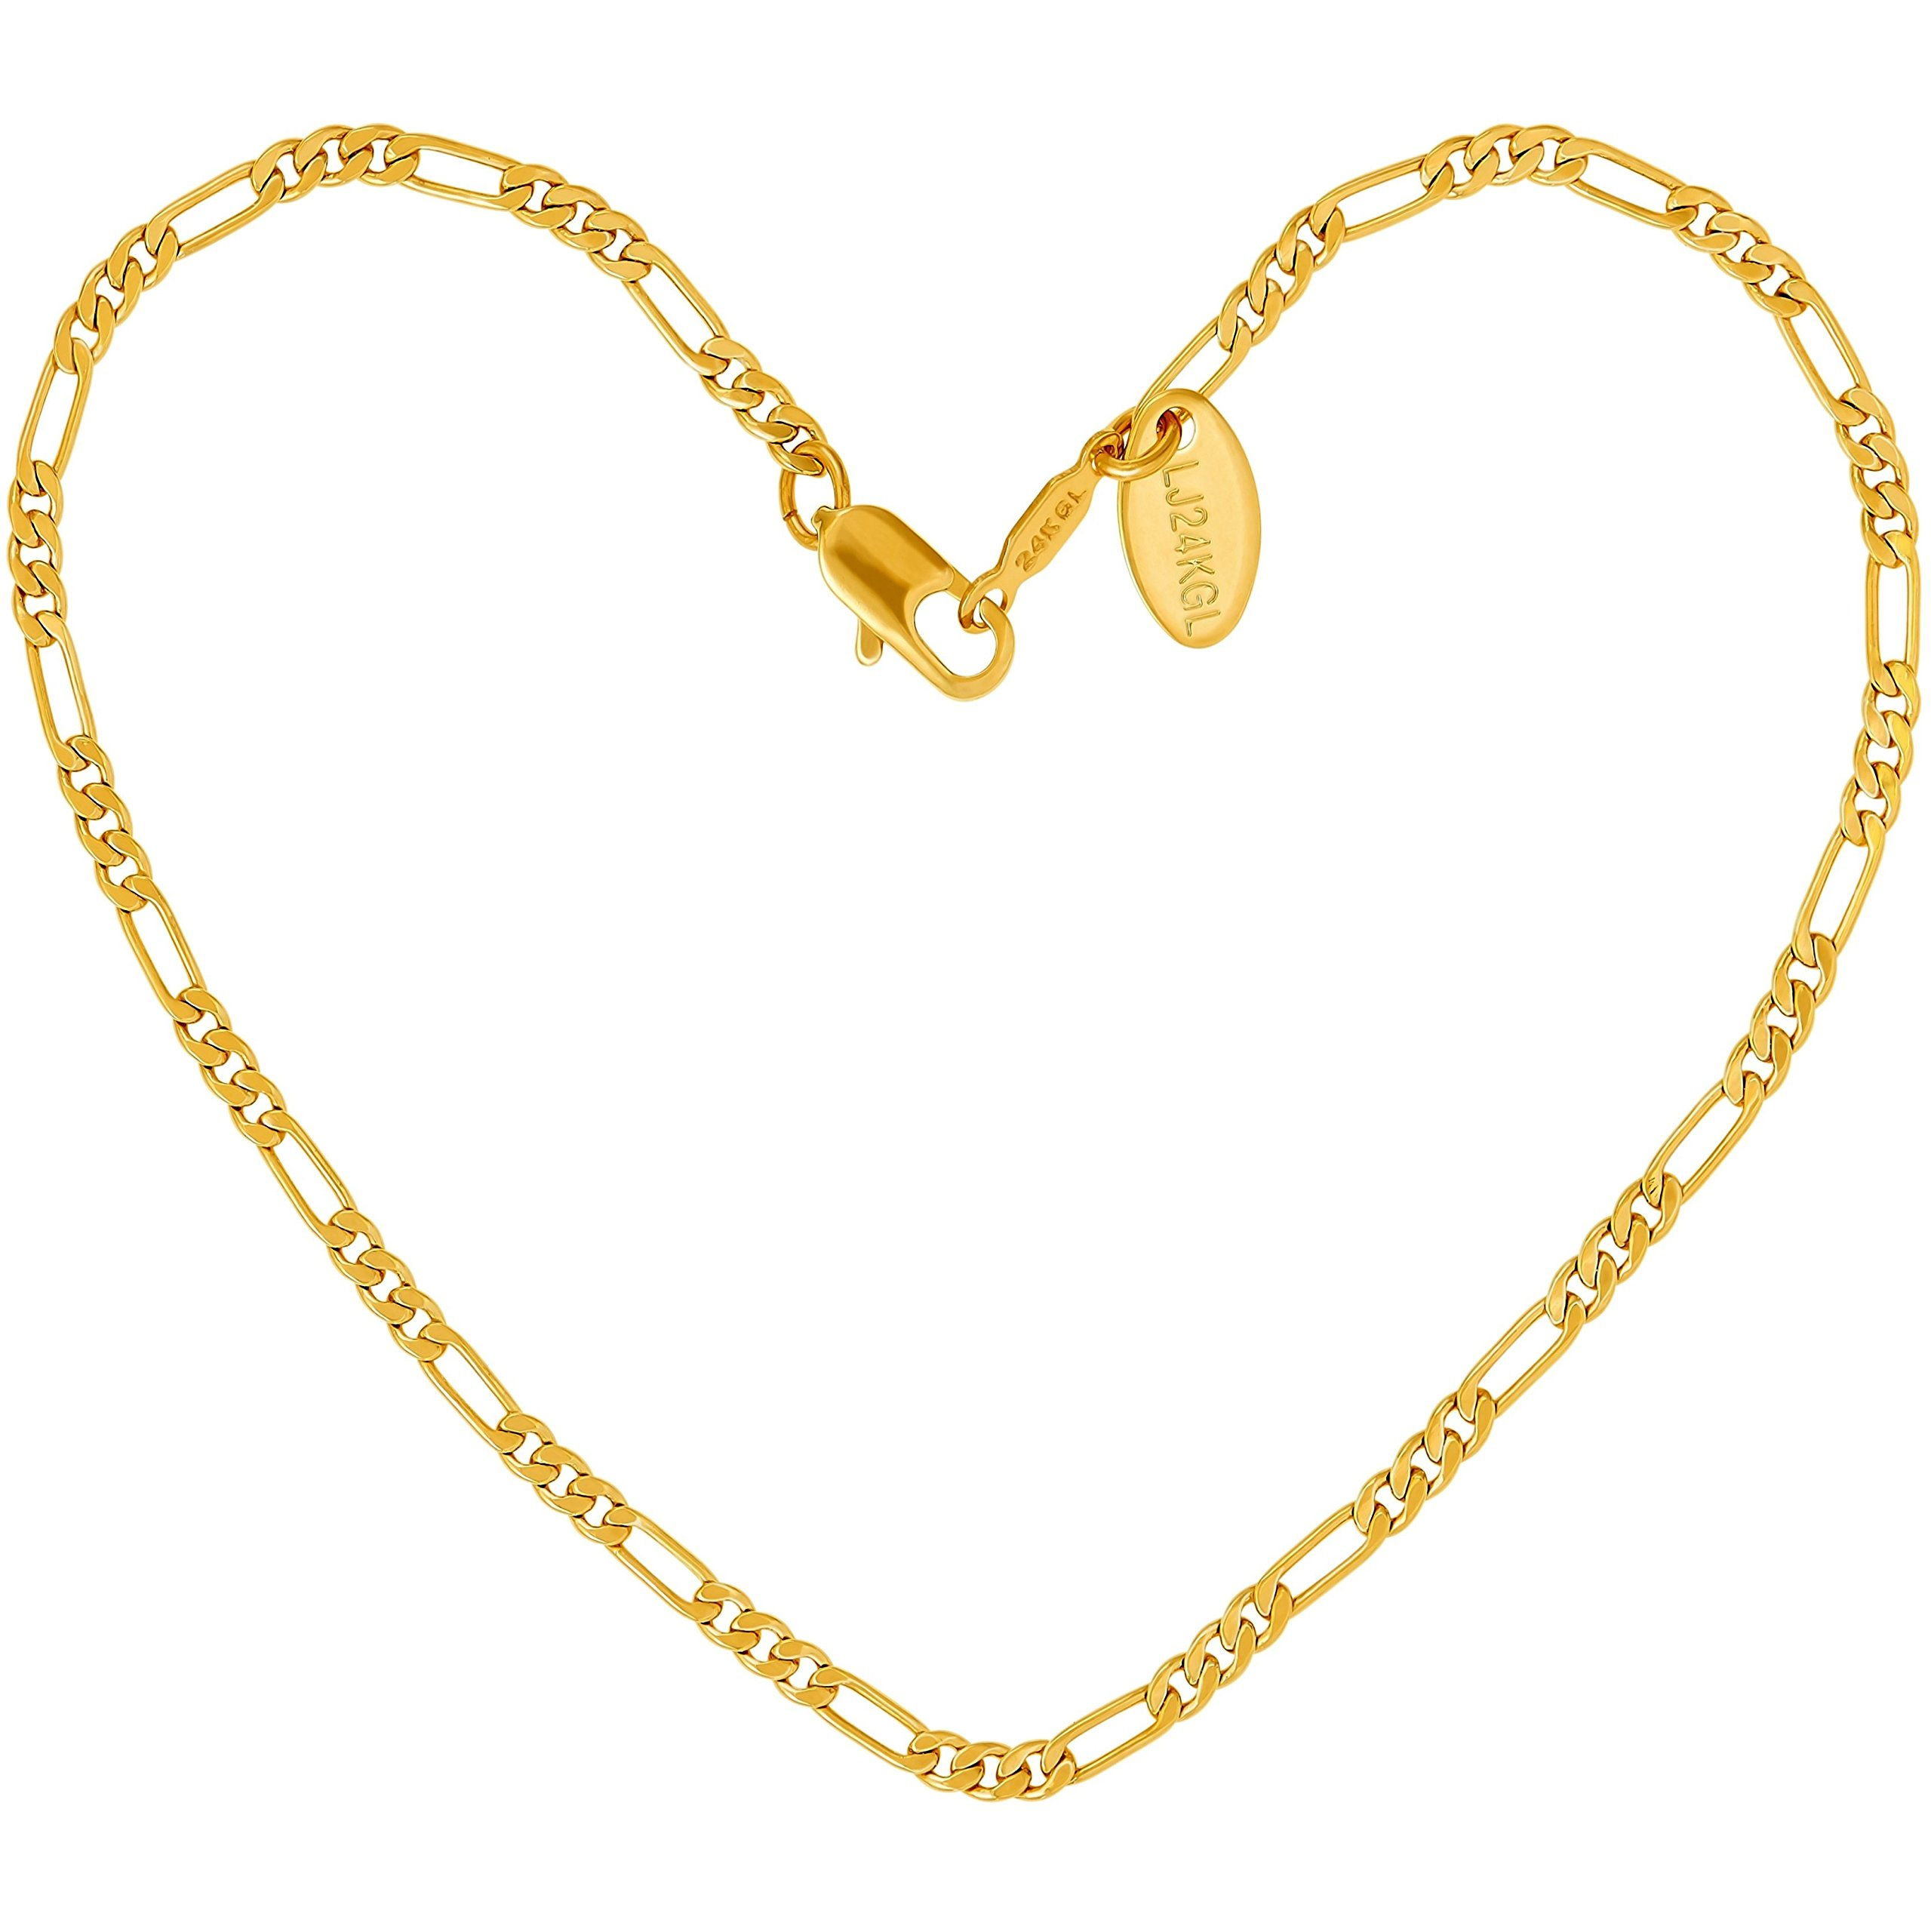 Lifetime Jewelry Anklets for Women Men and Teen Girls - 24K Real Gold Plated 2.5mm Figaro Chain - Ankle Bracelet to wear at Beach or Party - 9-11 inches (10, yellow-gold-plated-base)